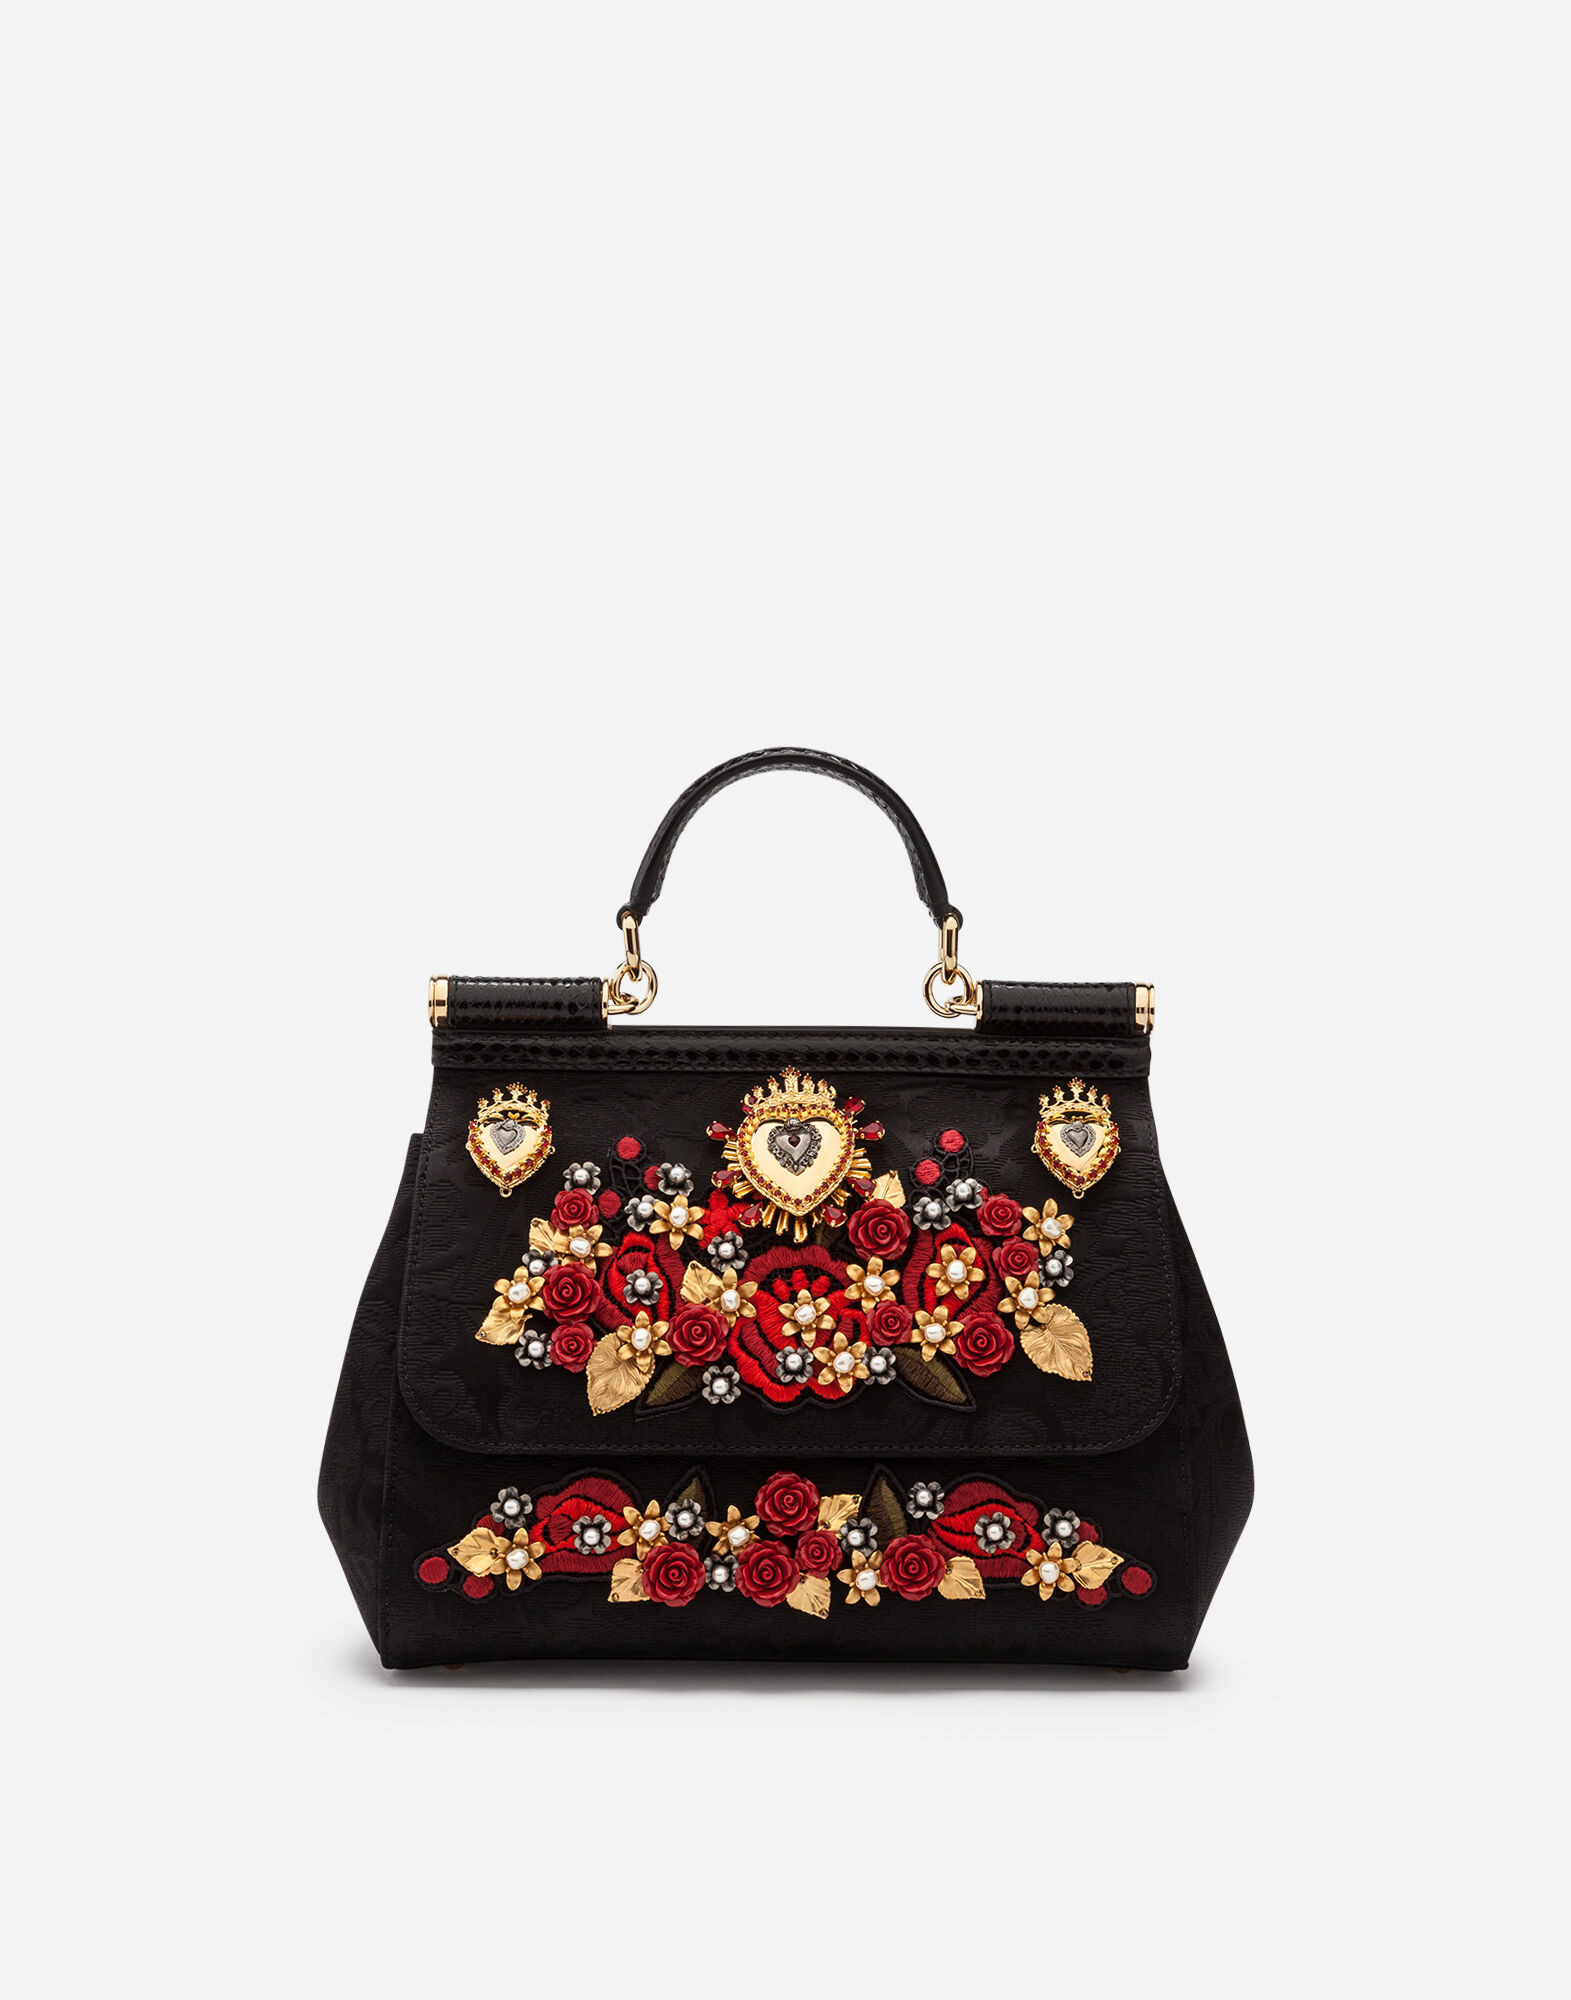 Medium Sicily Bag In Brocade With Appliqués And Embroidery in Black